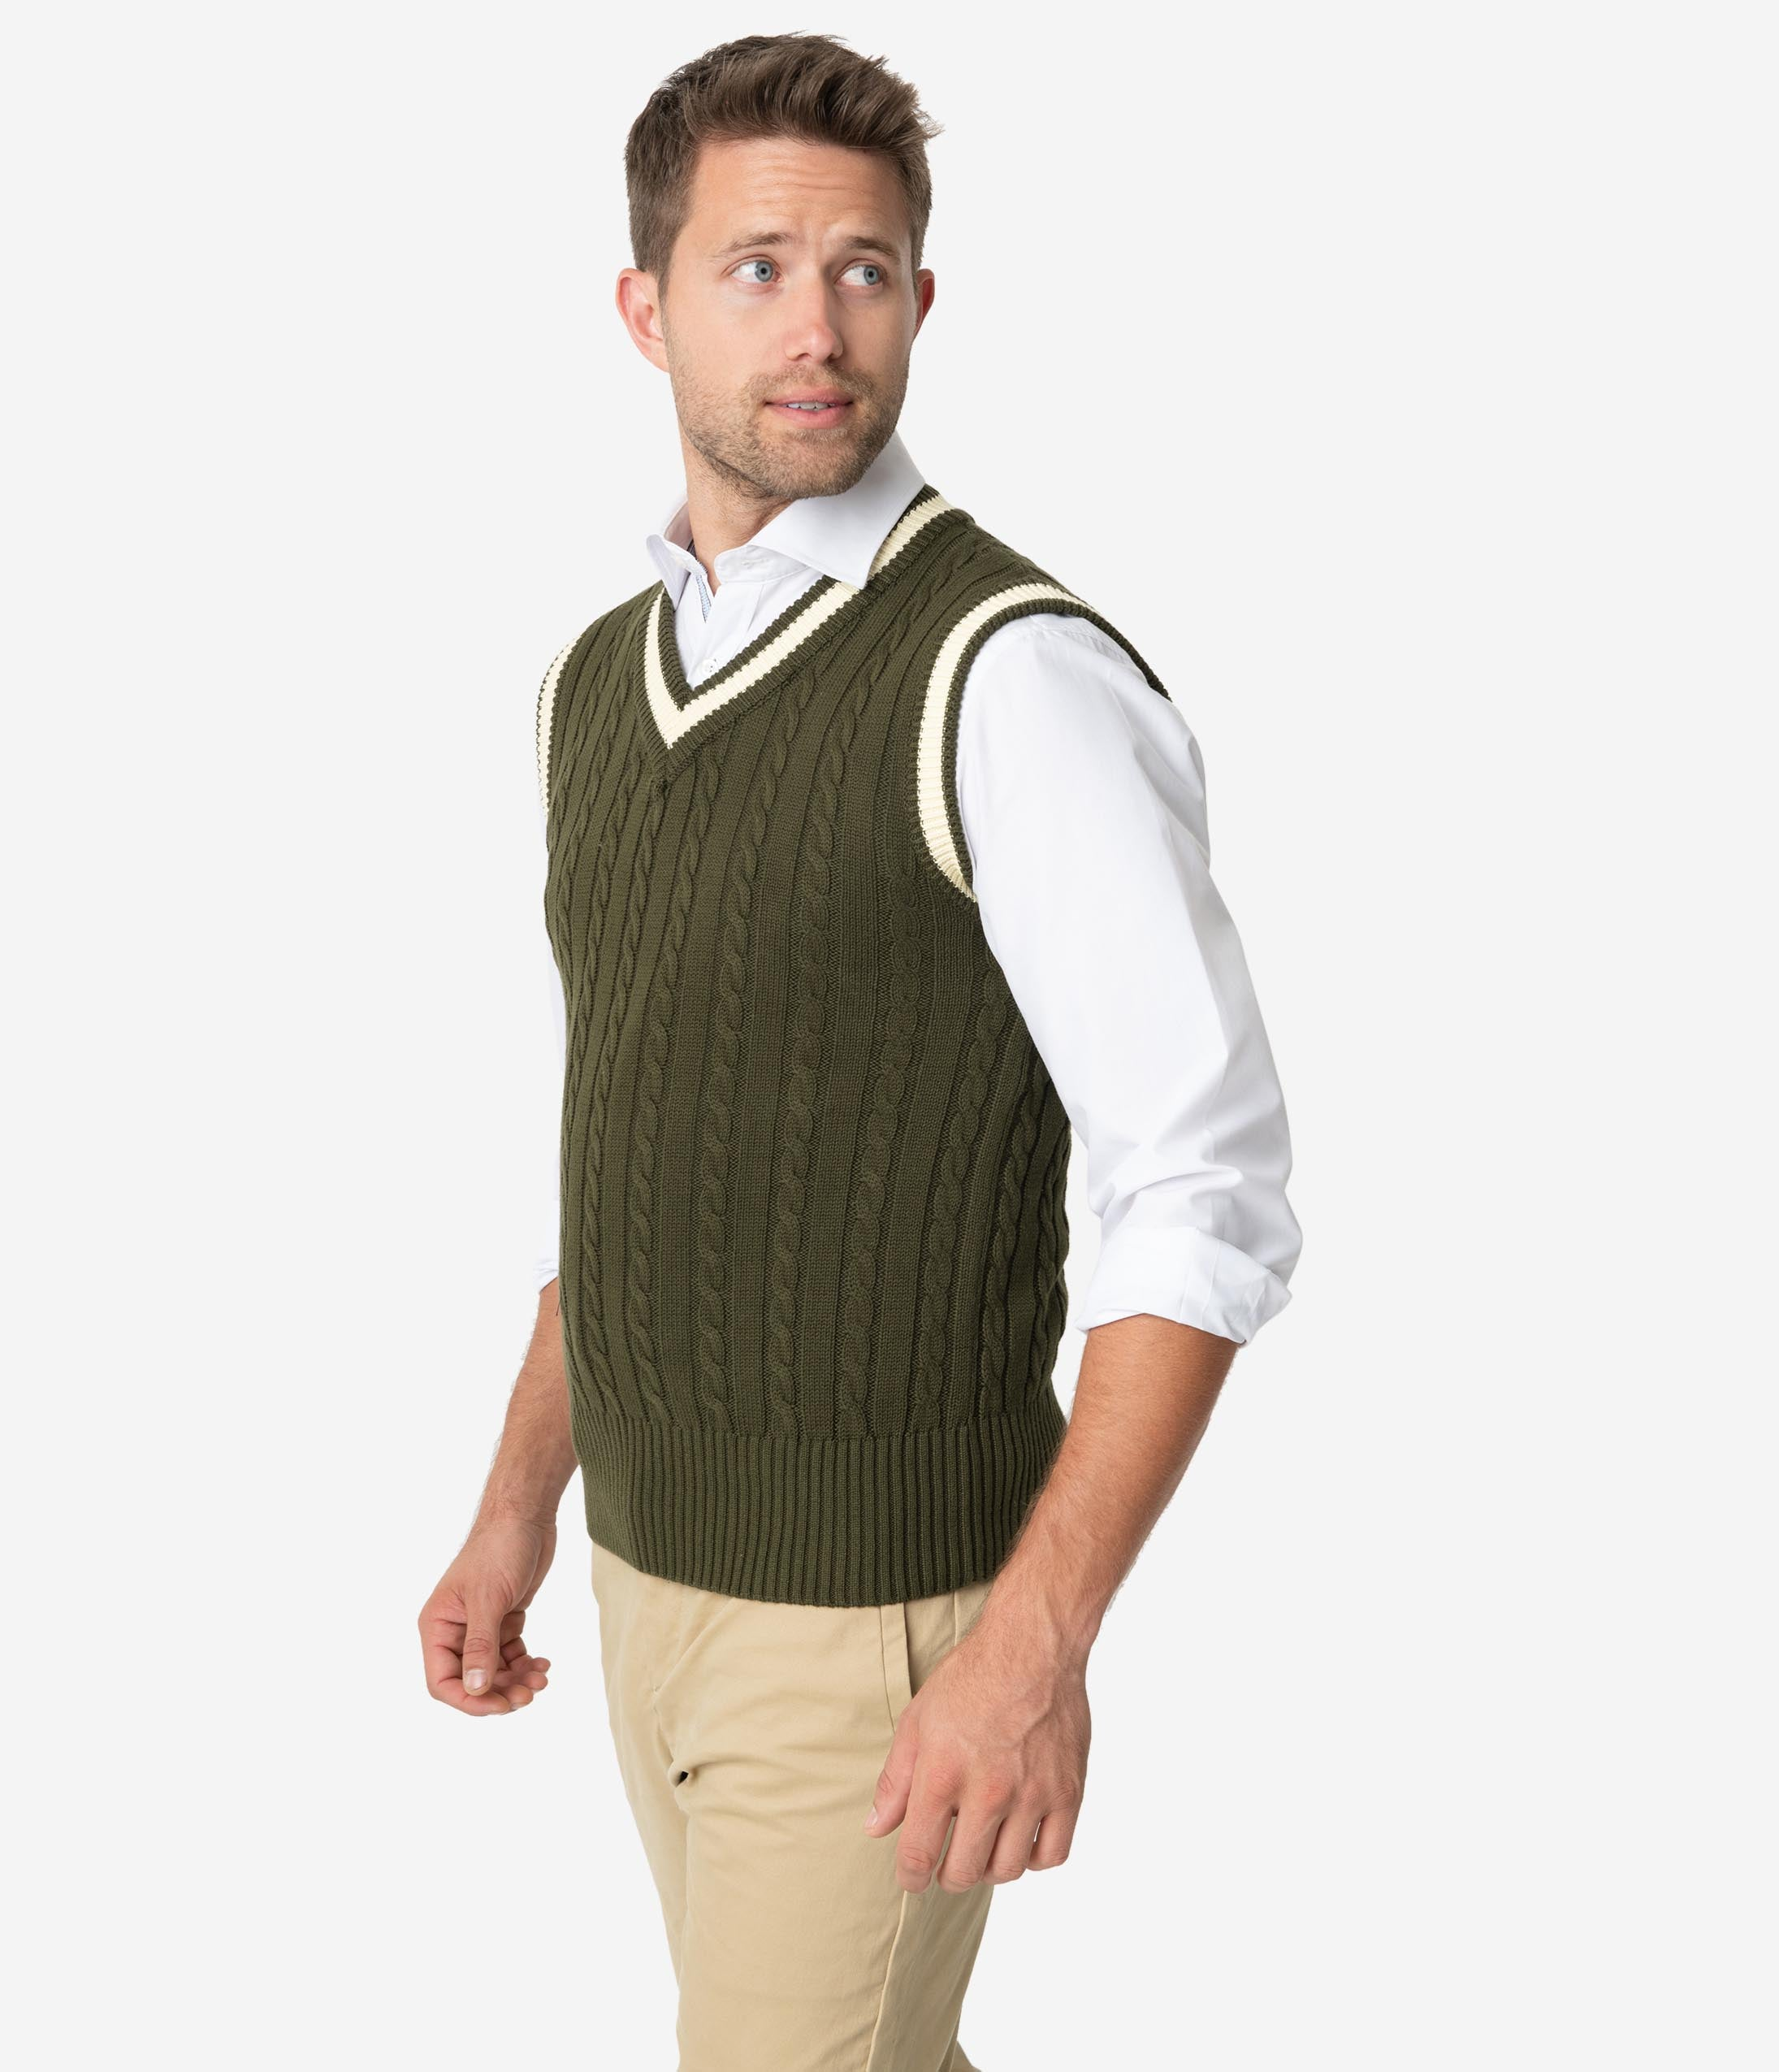 1950s Men's Clothing Collectif 1950S Olive Green Cable Knit Alex Mens Sweater Vest $48.00 AT vintagedancer.com